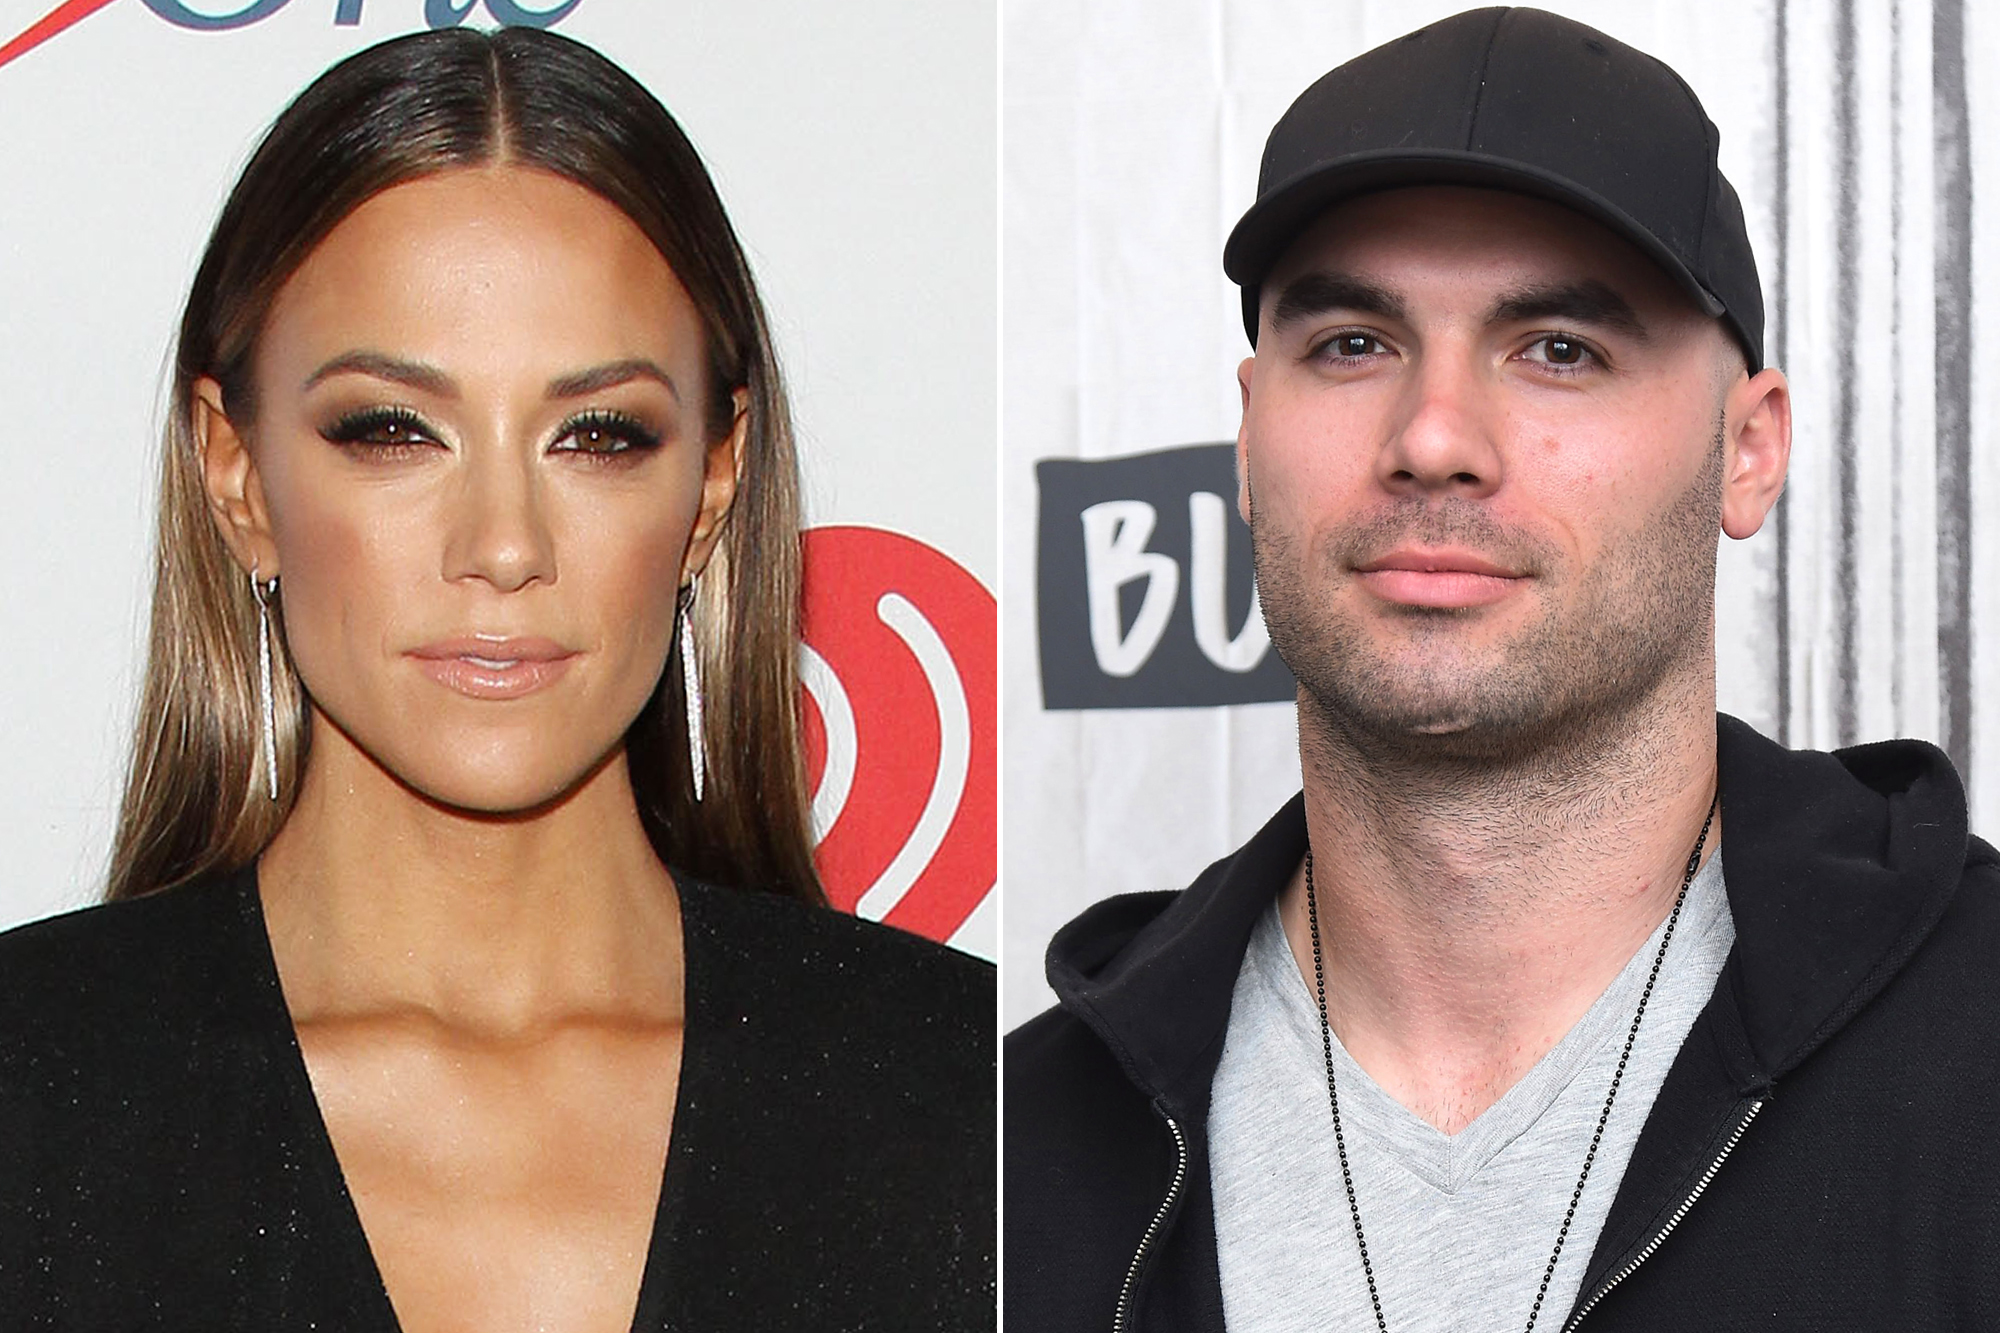 Jana Kramer Divorcing Mike Caussin: Amid Affair? All the truth revealed